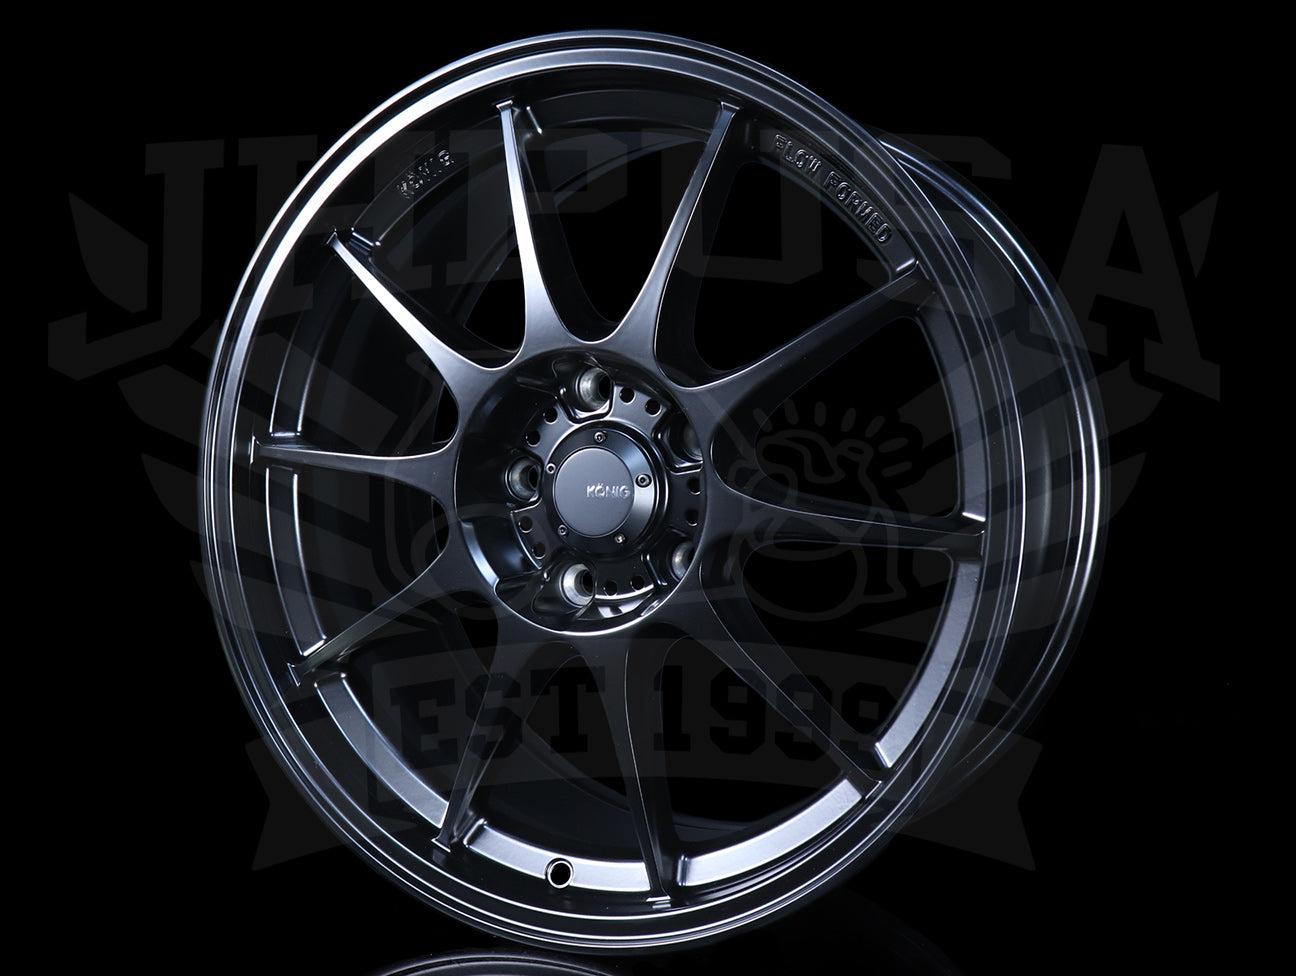 Konig Dekagram Wheels - Matte Black 18x8.5 / 5x120 / +32